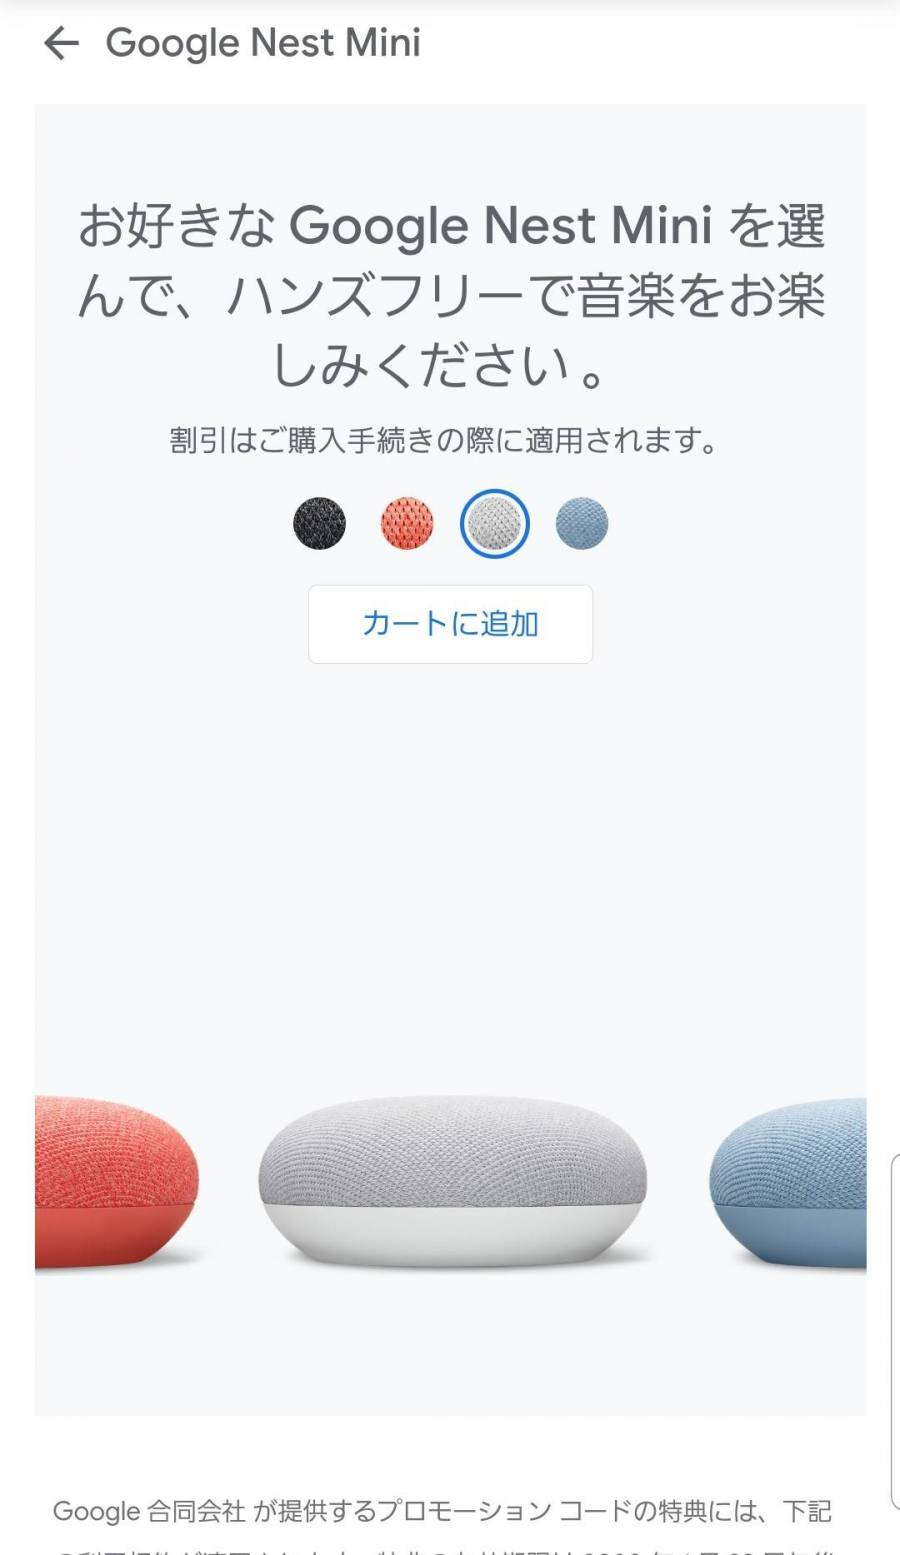 Google Nest Mini カラー選択